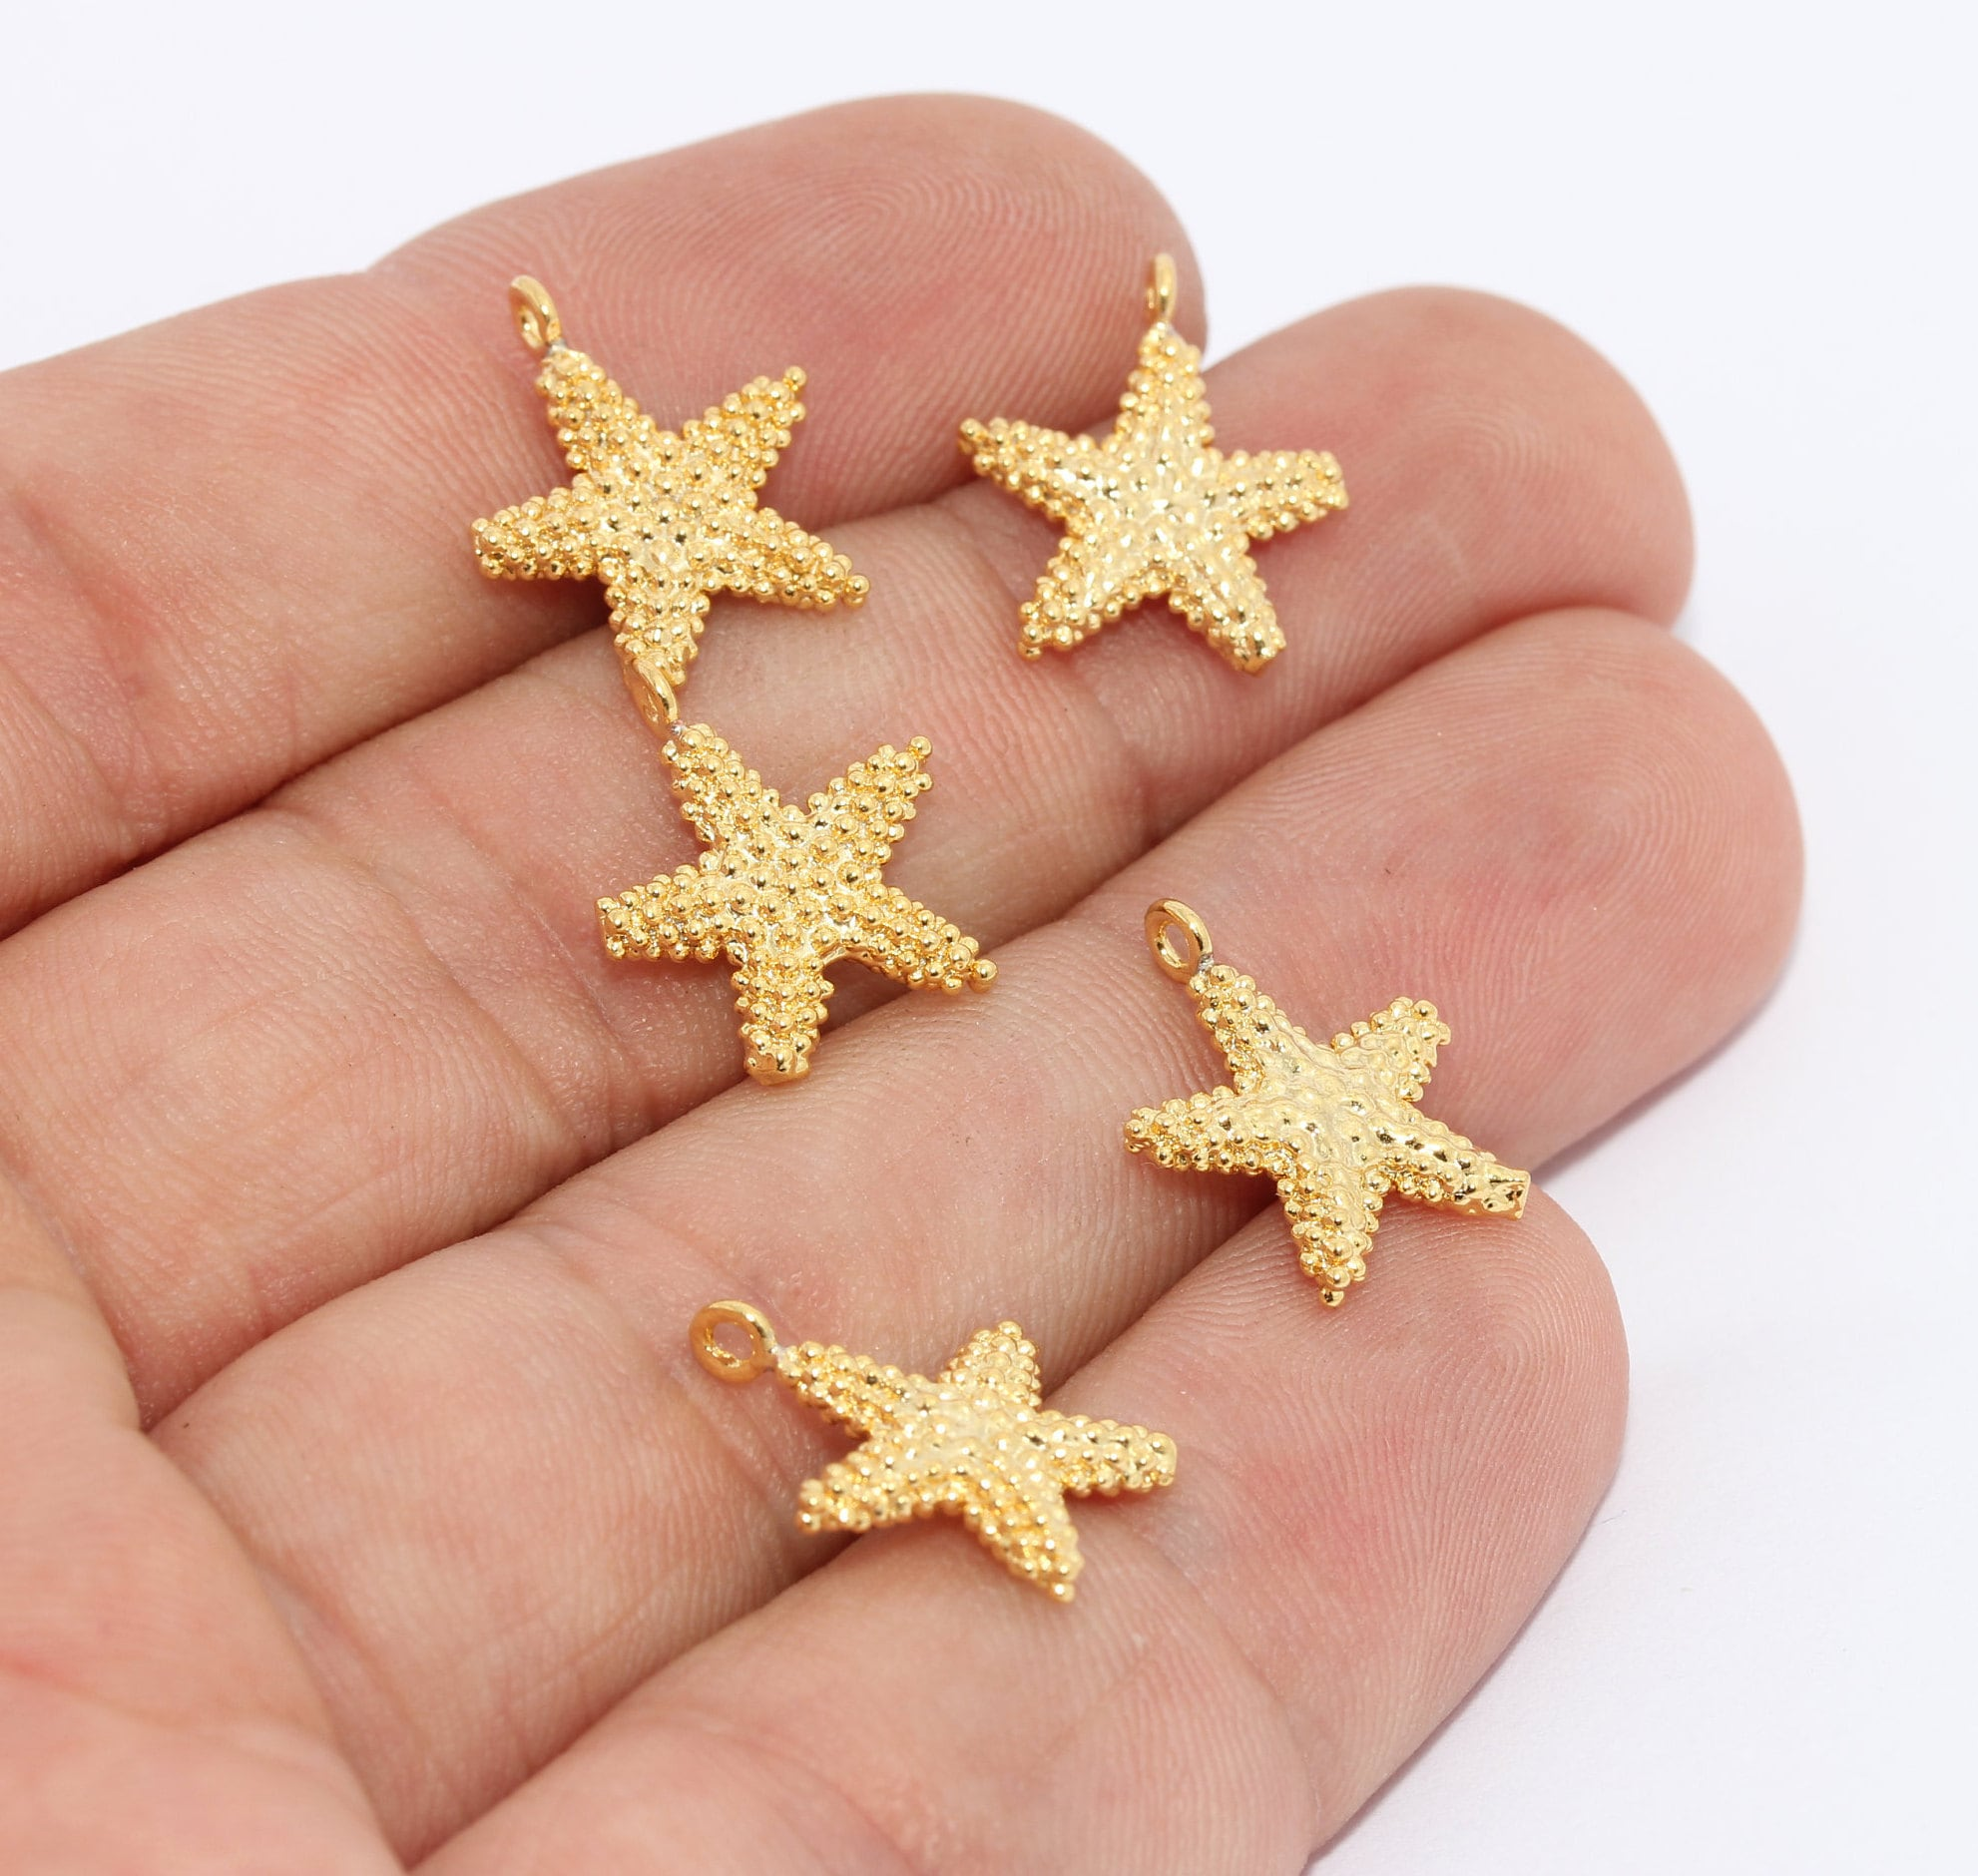 Neon Enamel Oyster Findings GLD095 Minimal Oyster Charms 9,5x10,5 mm 24k Shiny Gold Plated Oyster Charms Yellow Enamel Star Charms